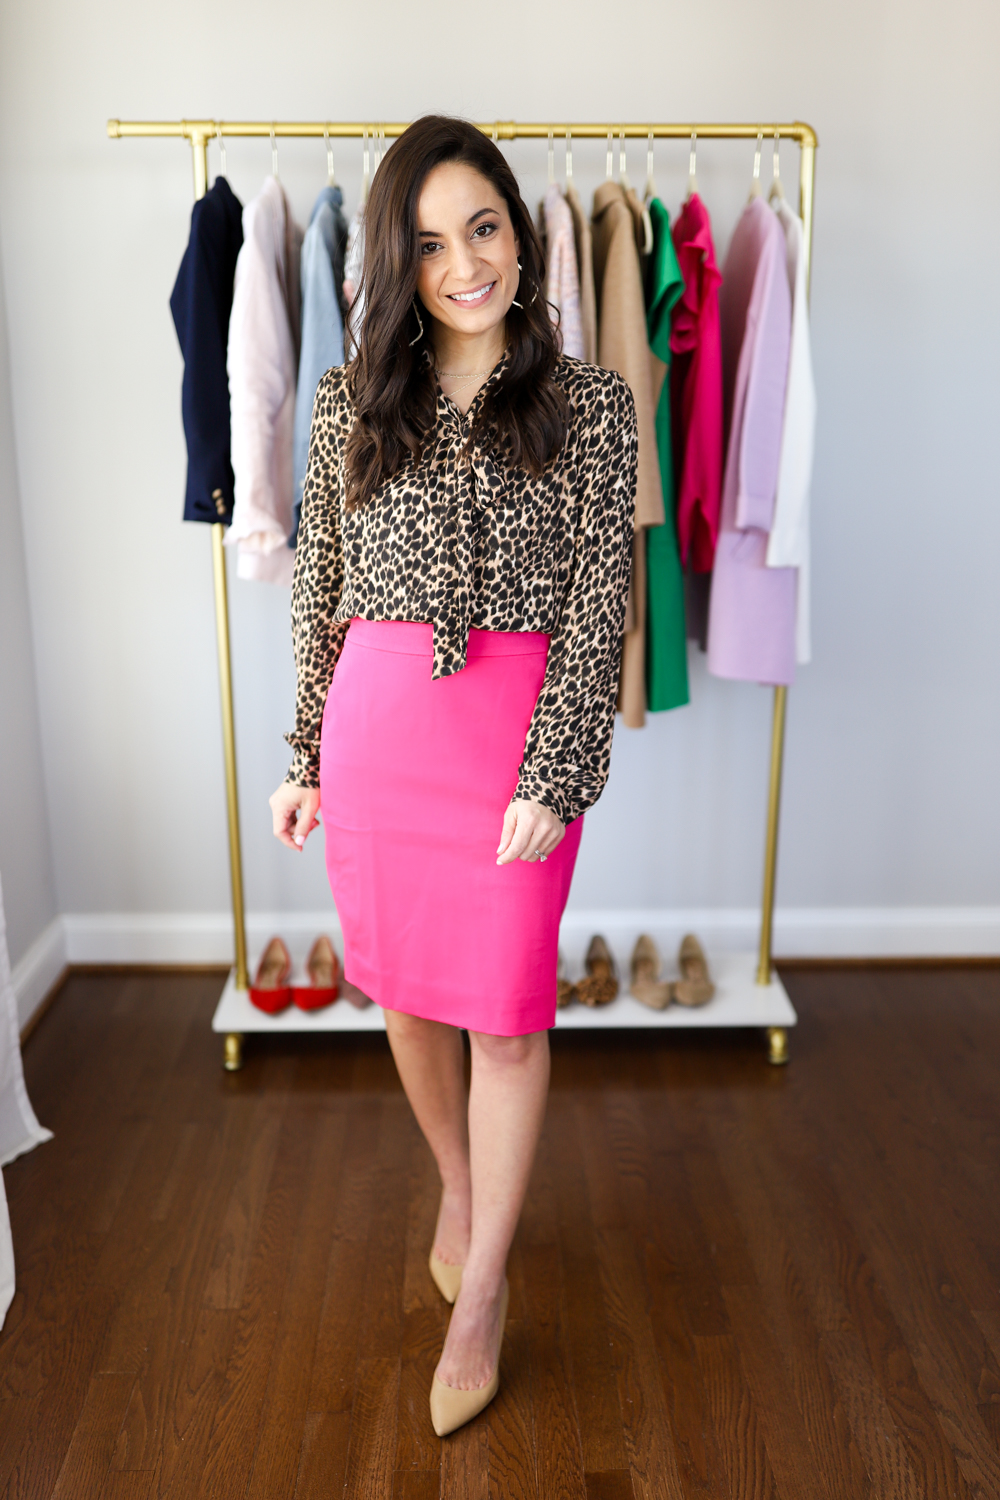 7 Outfits To Wear To Work Petite Style Pumps Push Ups